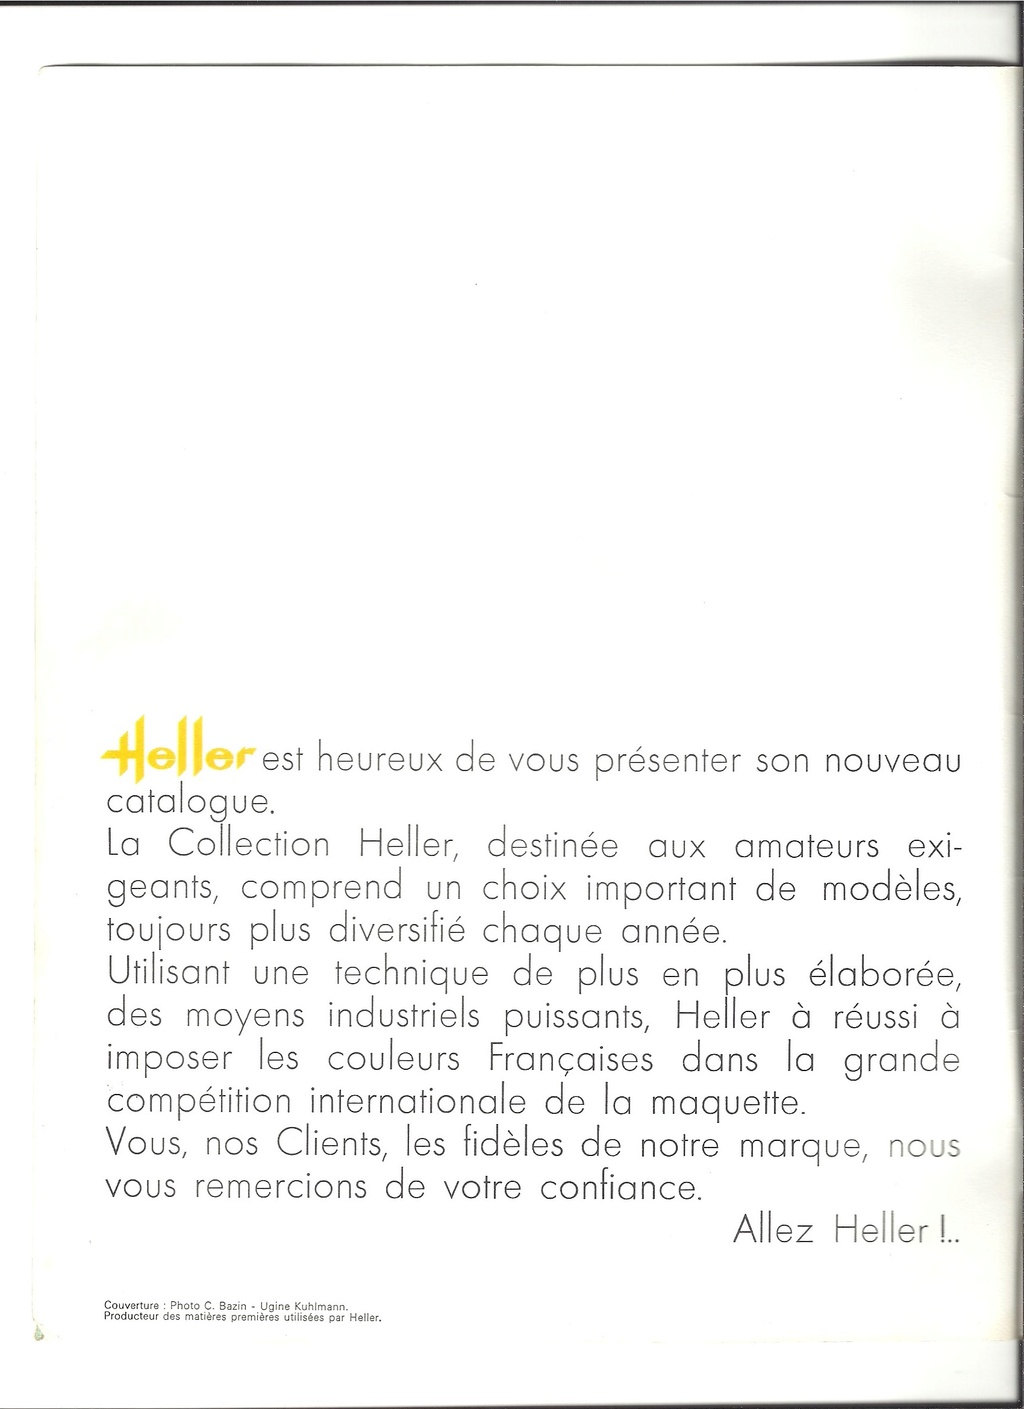 [1971] Catalogue 1971 Heller52